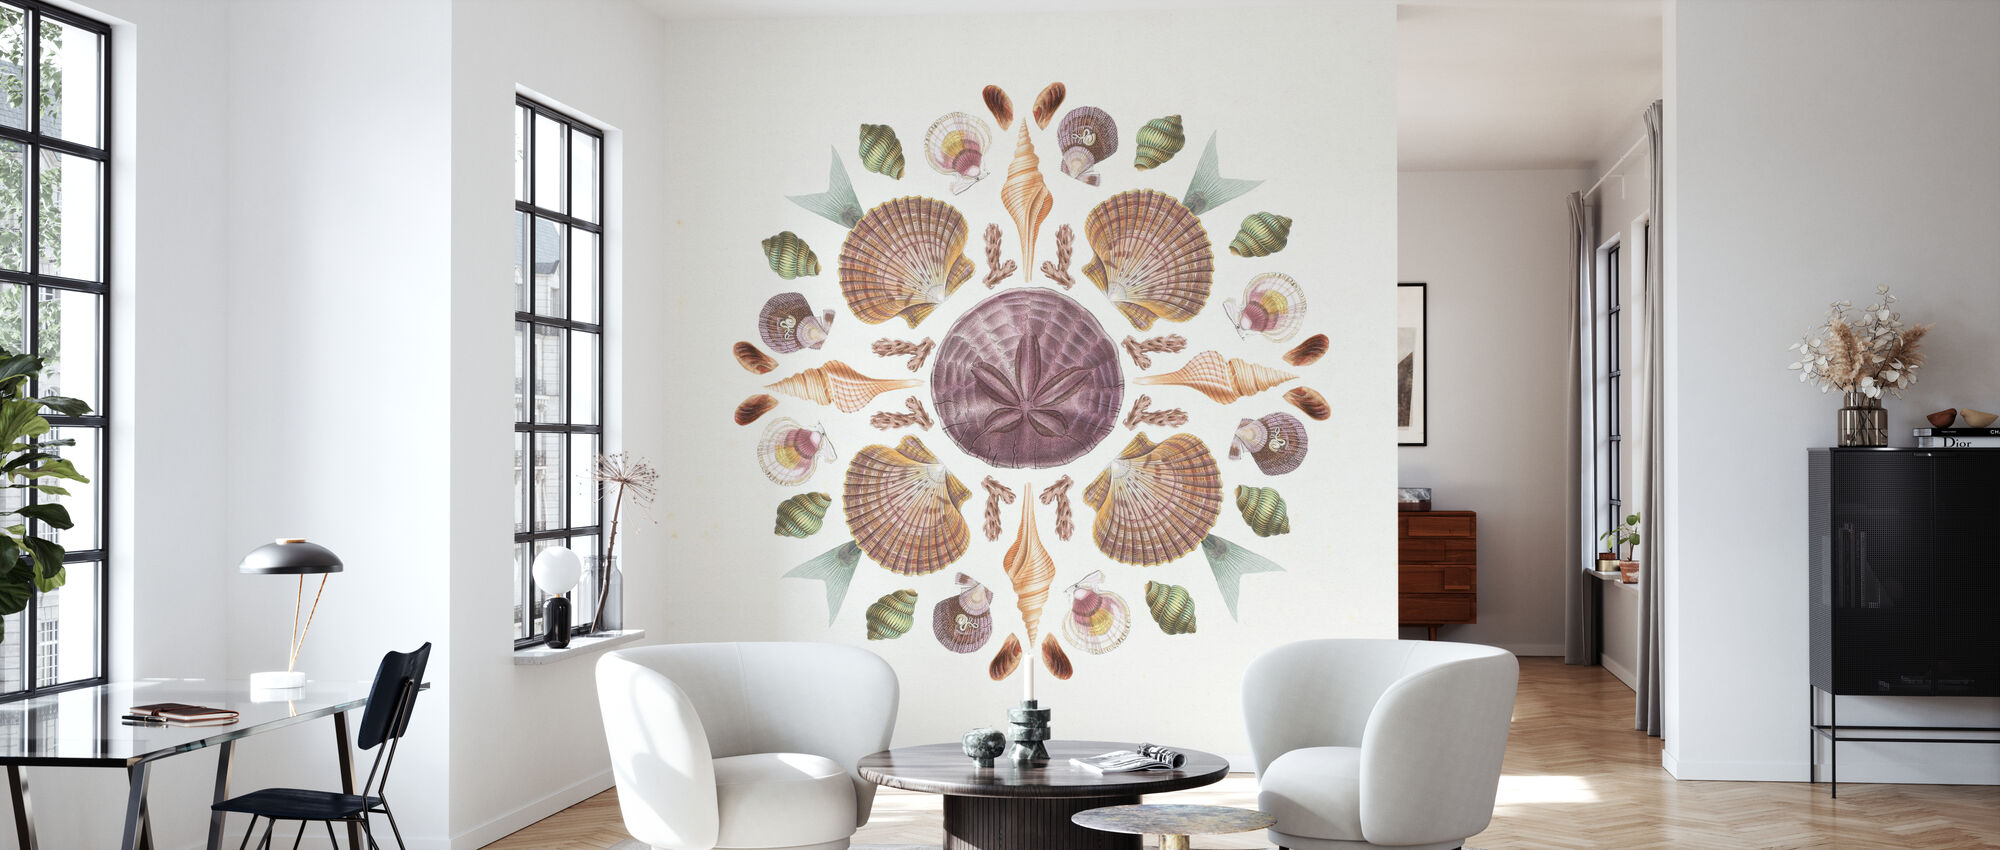 Ocean Mandala - Wallpaper - Living Room